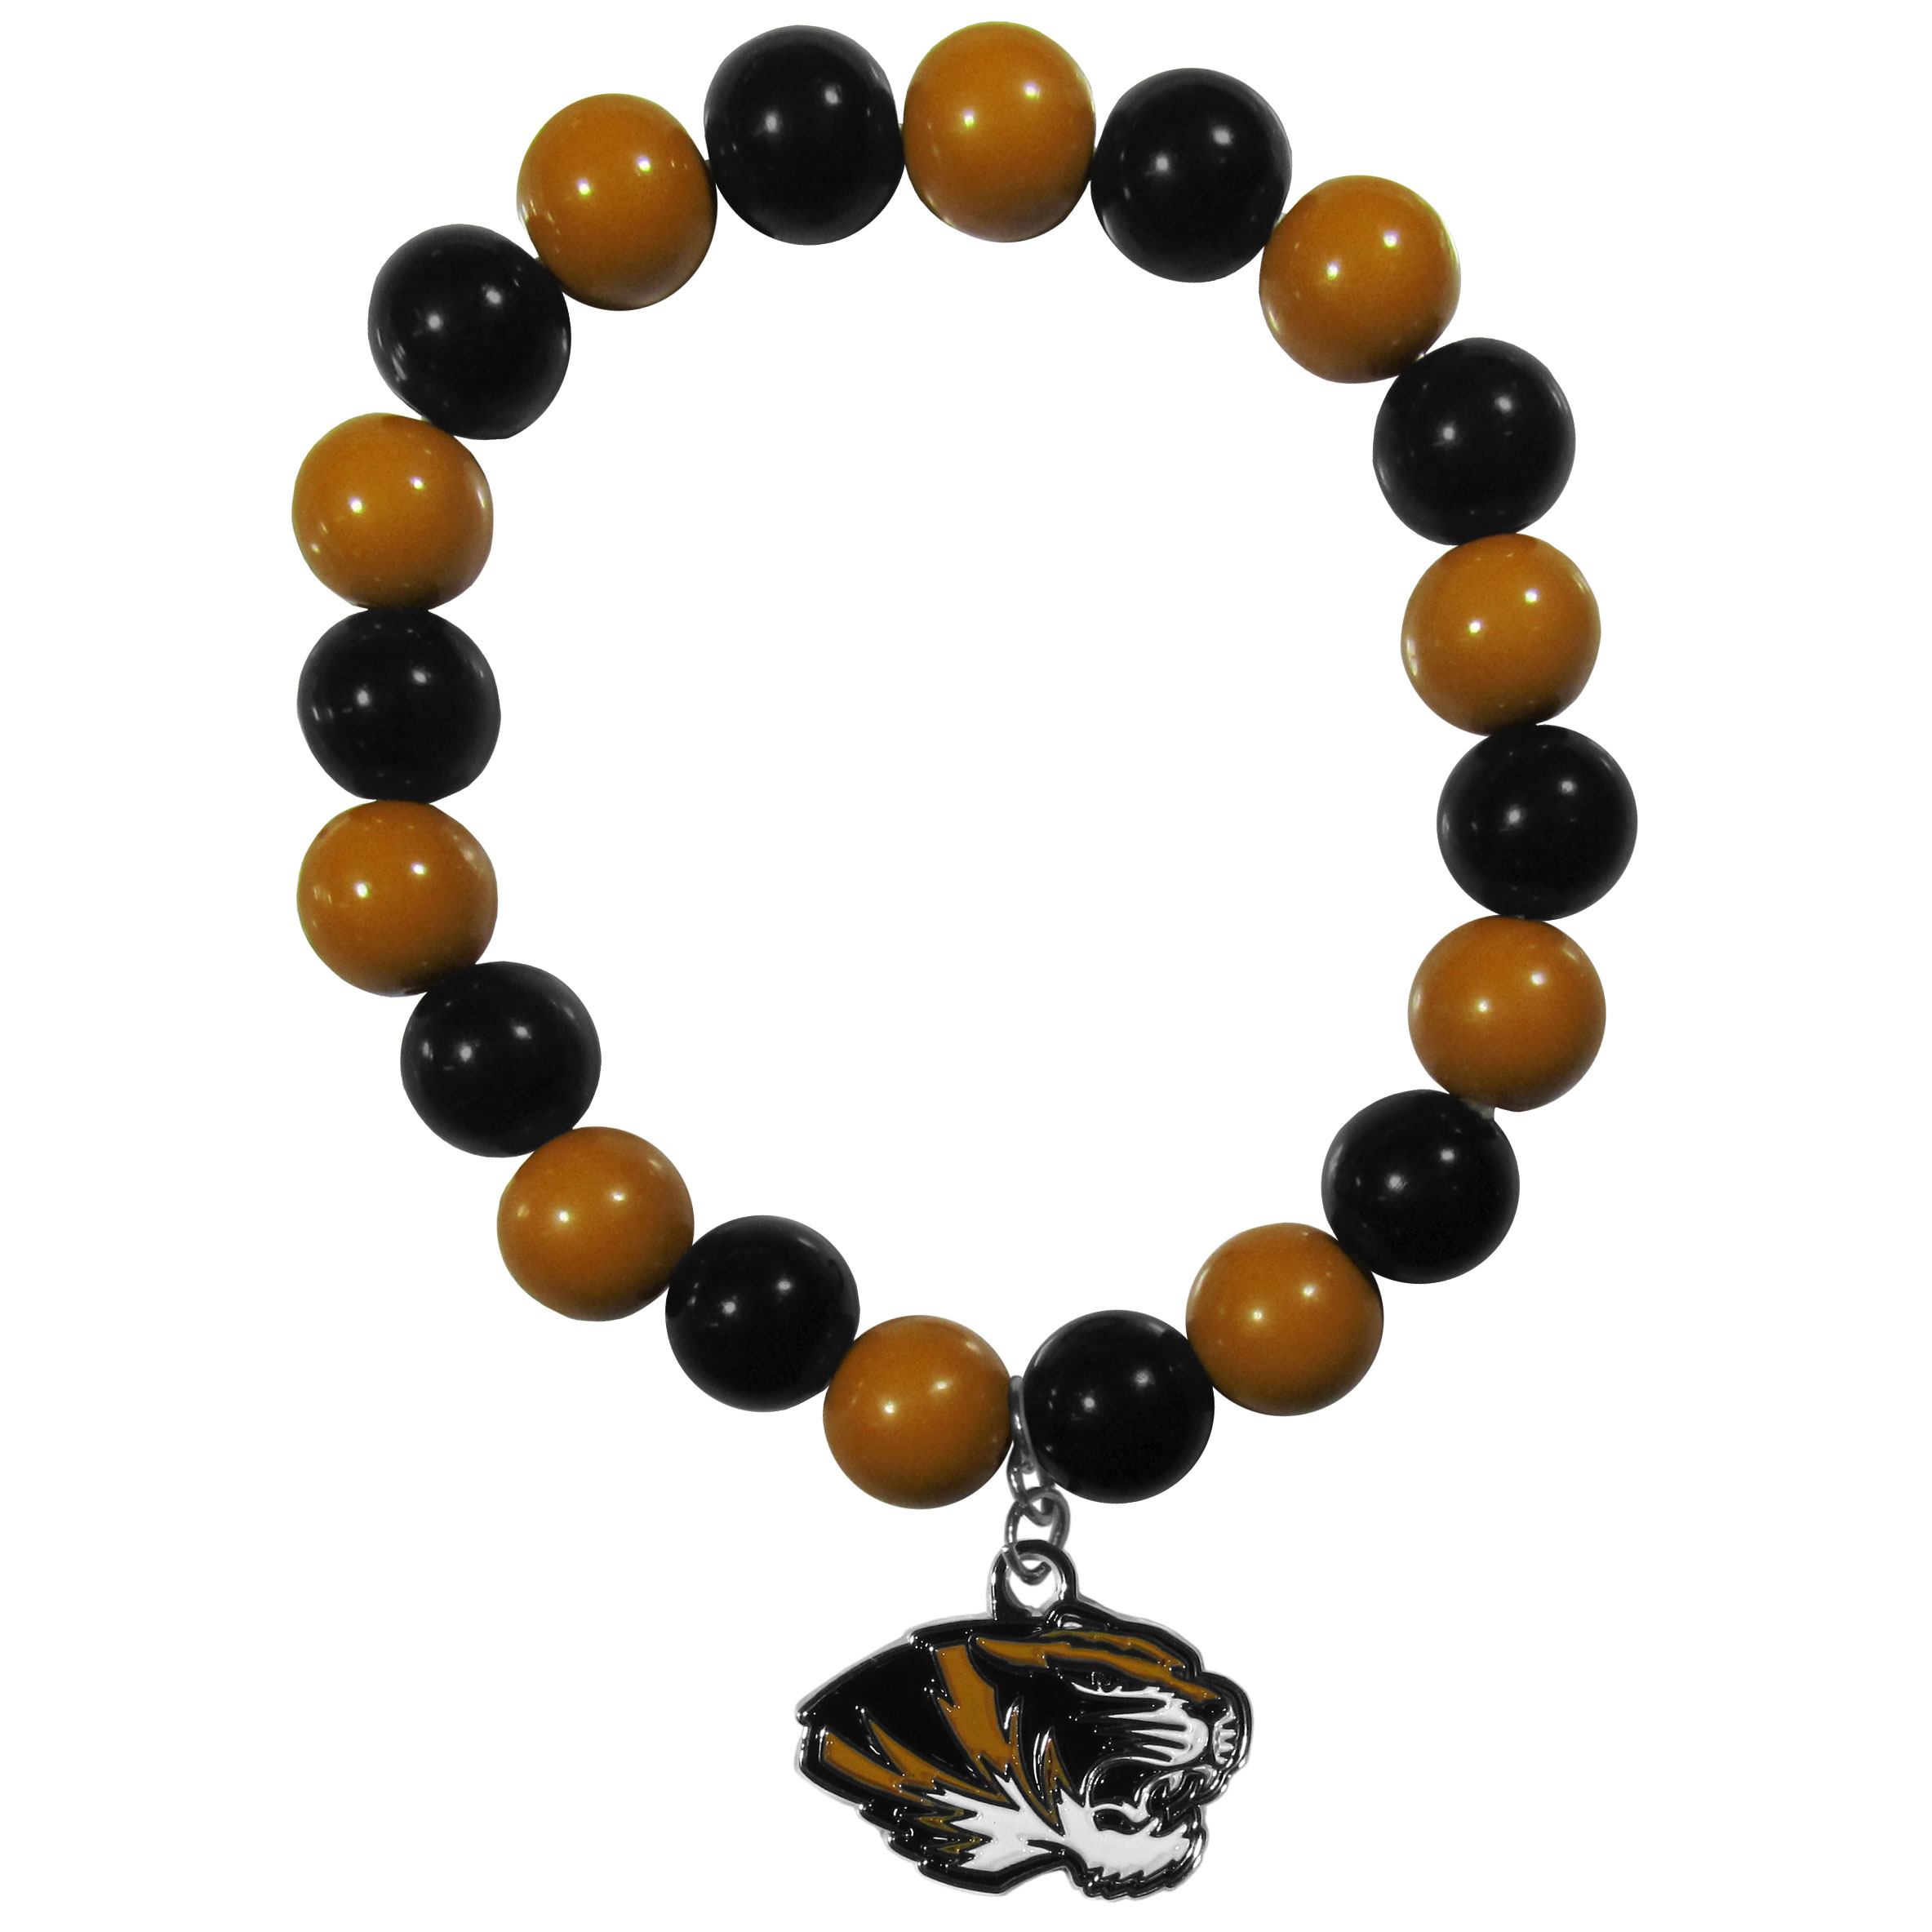 Missouri Tigers Fan Bead Bracelet - Flash your Missouri Tigers spirit with this bright stretch bracelet. This new bracelet features multicolored team beads on stretch cord with a nickel-free enameled chrome team charm. This bracelet adds the perfect pop of color to your game day accessories.